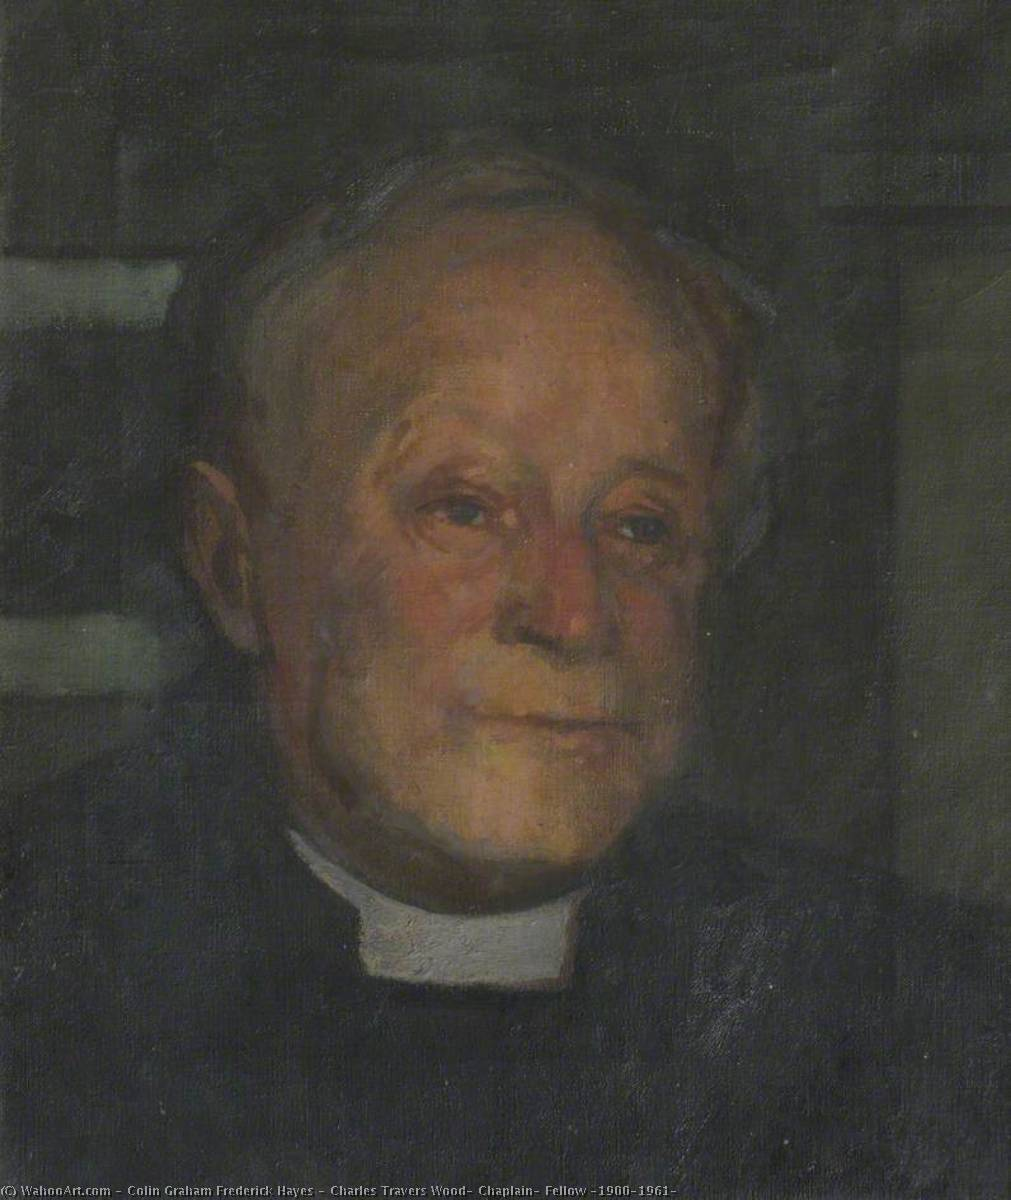 Charles Travers Wood, Chaplain, Fellow (1900–1961) by Colin Graham Frederick Hayes | Oil Painting | WahooArt.com